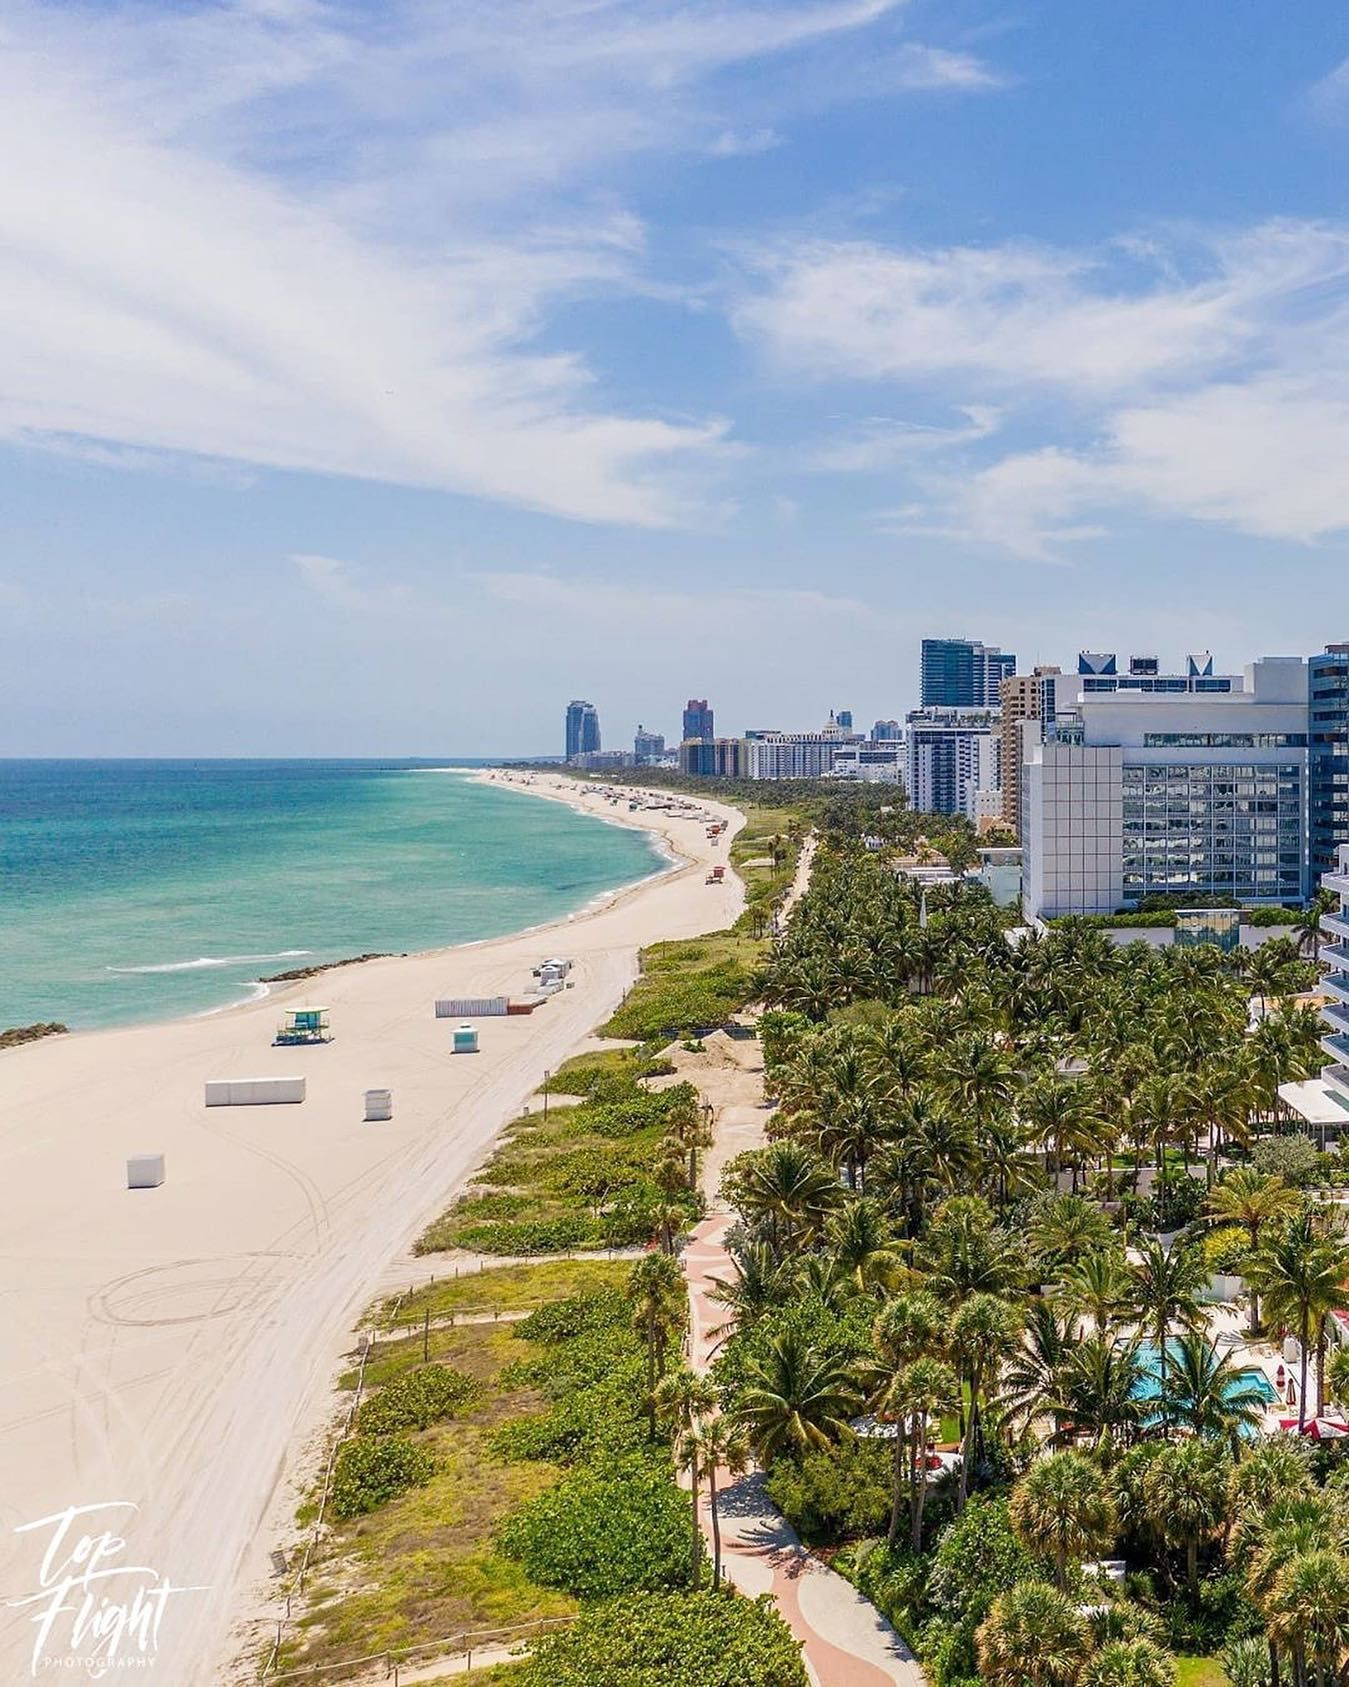 With love from Miami Beach  Tag someone who wishes to be here   @topflight_photography #miamibeach #miamivibes #miamiliving